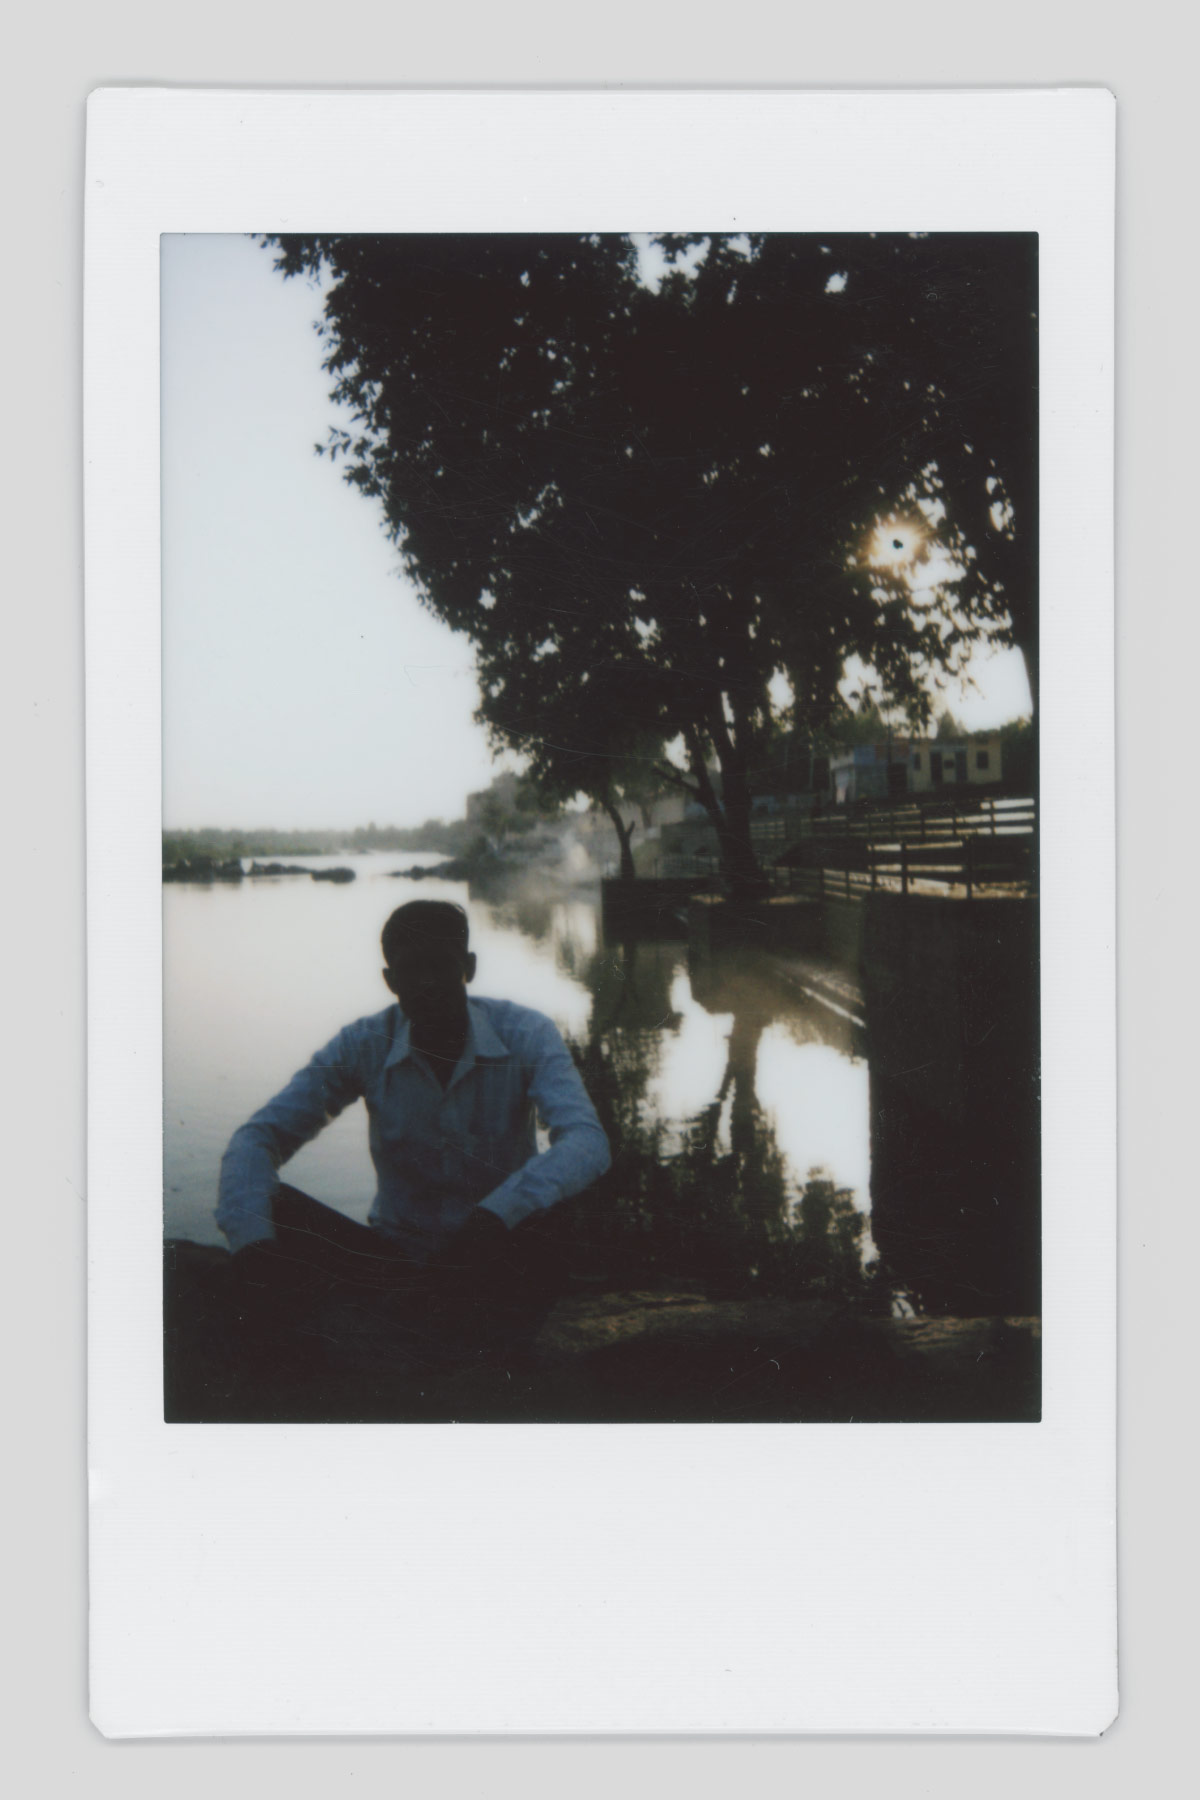 giulio_favotto_india_details_polaroid_instax_14